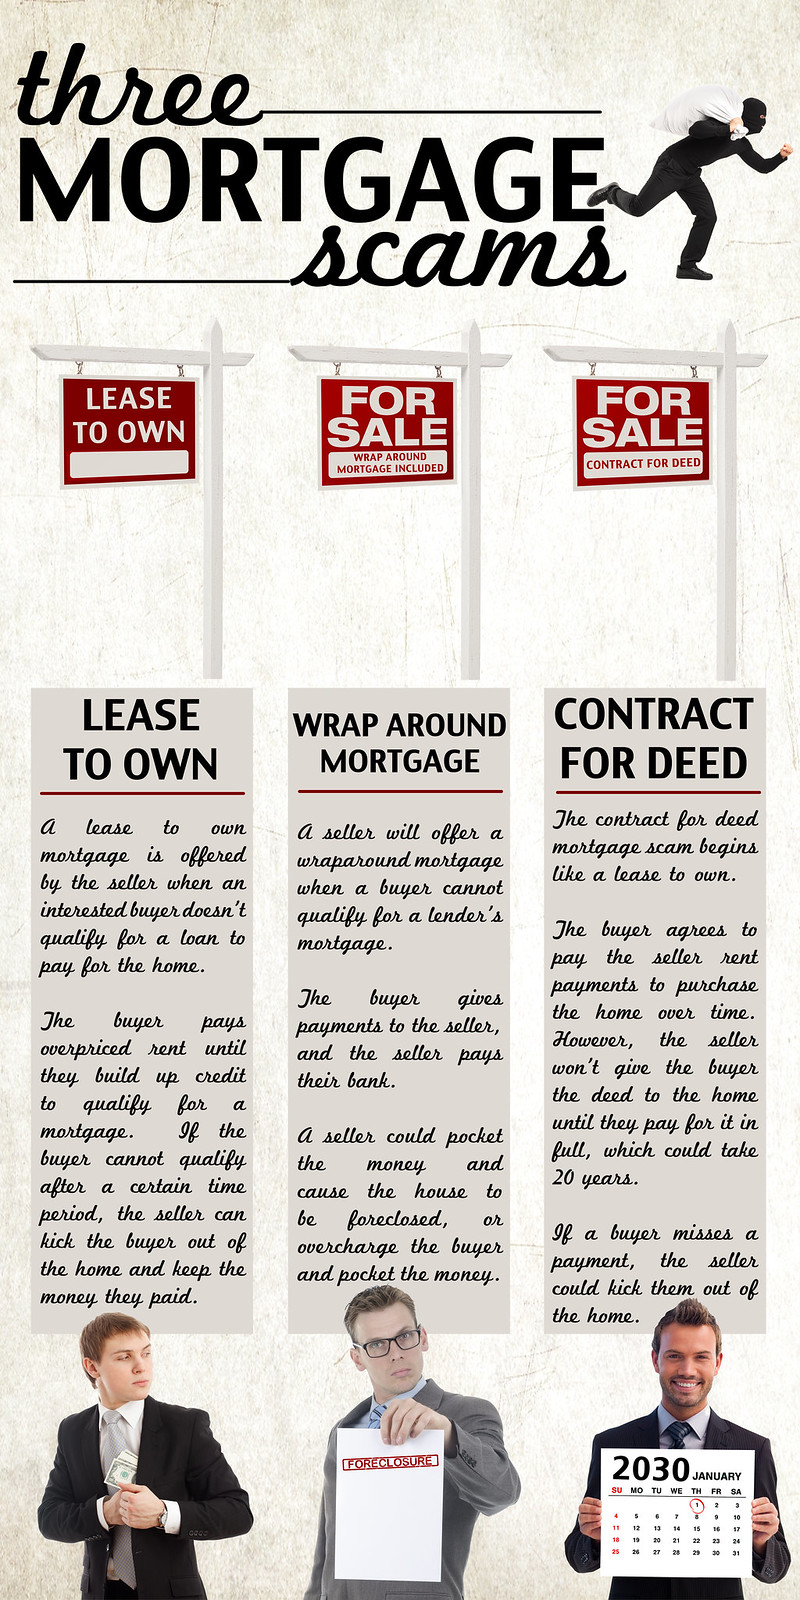 three mortgage scams